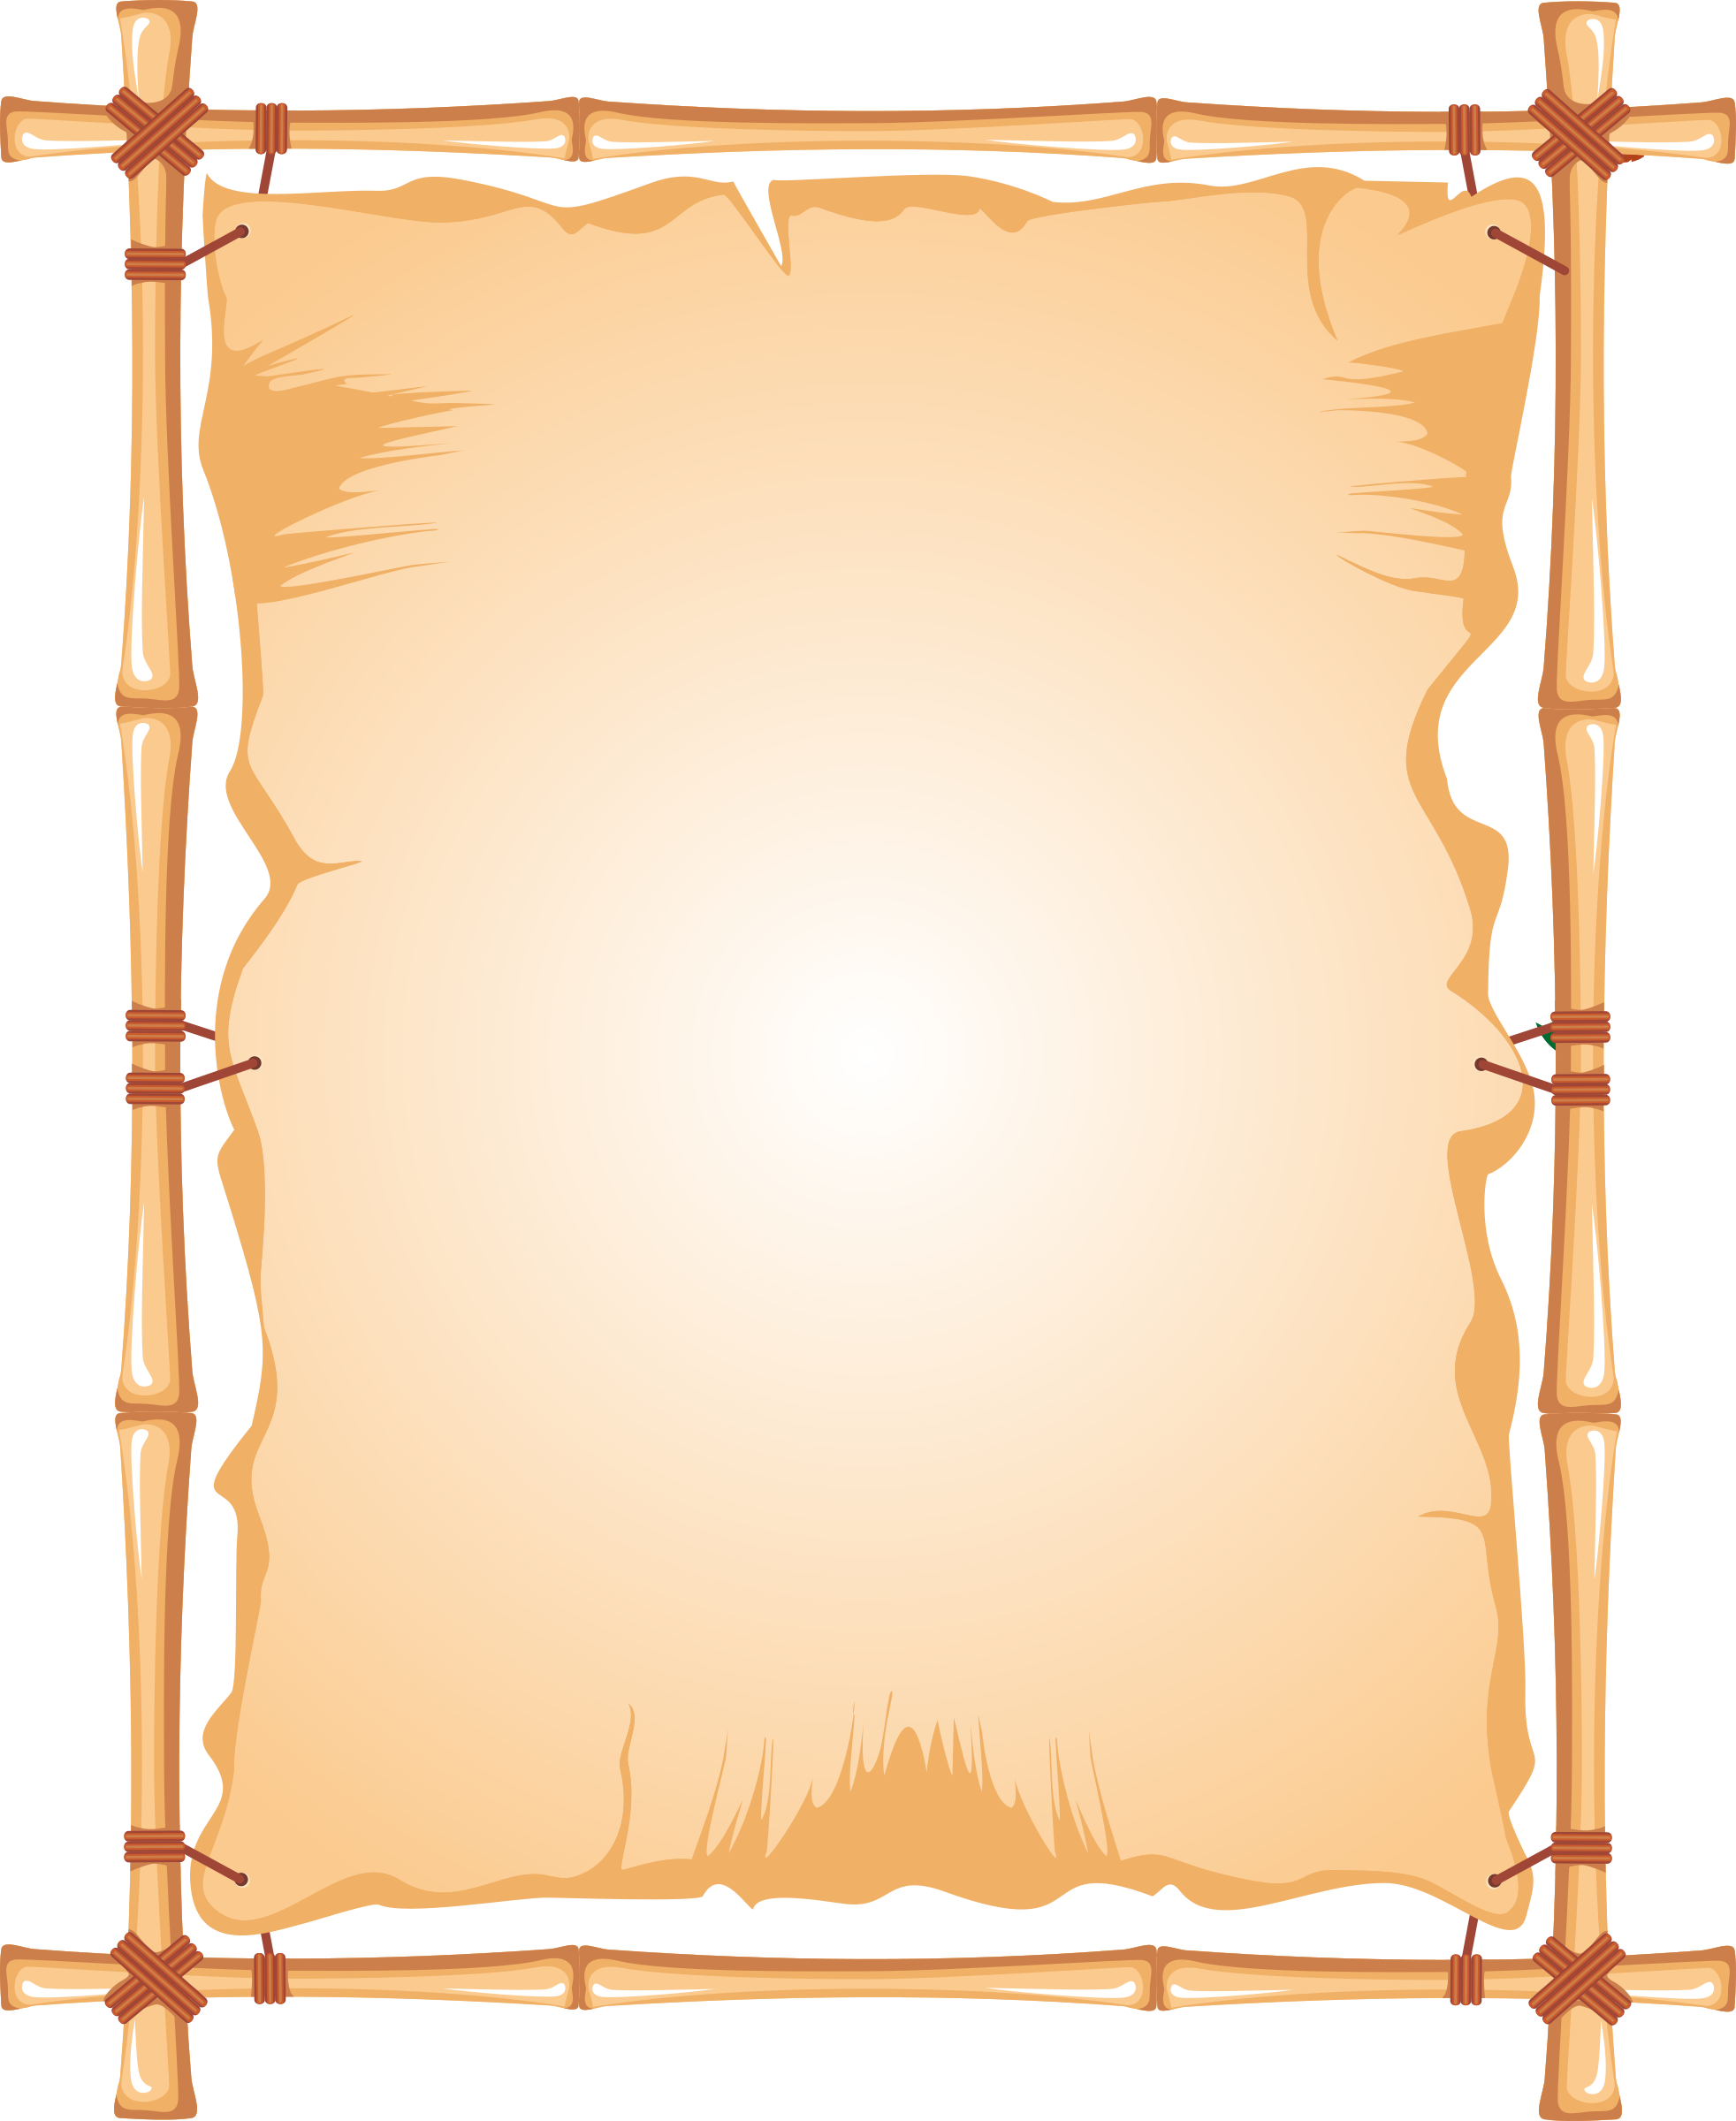 Bamboo frame png. Clipart big image